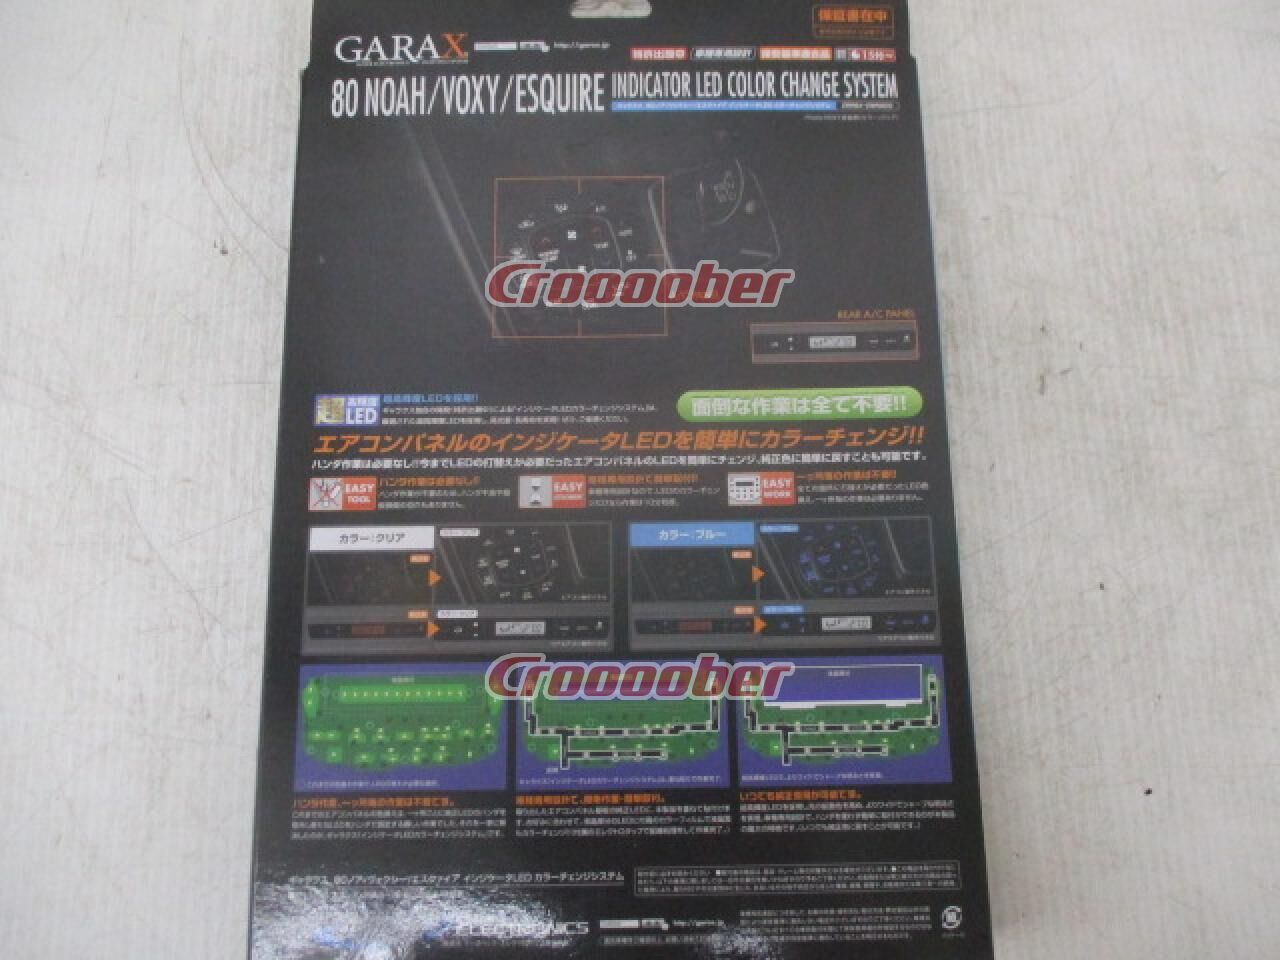 K 'SPEC GALAX INDICATOR LED COLOR CHANGE SYSTEM | Accessories | Croooober Japan